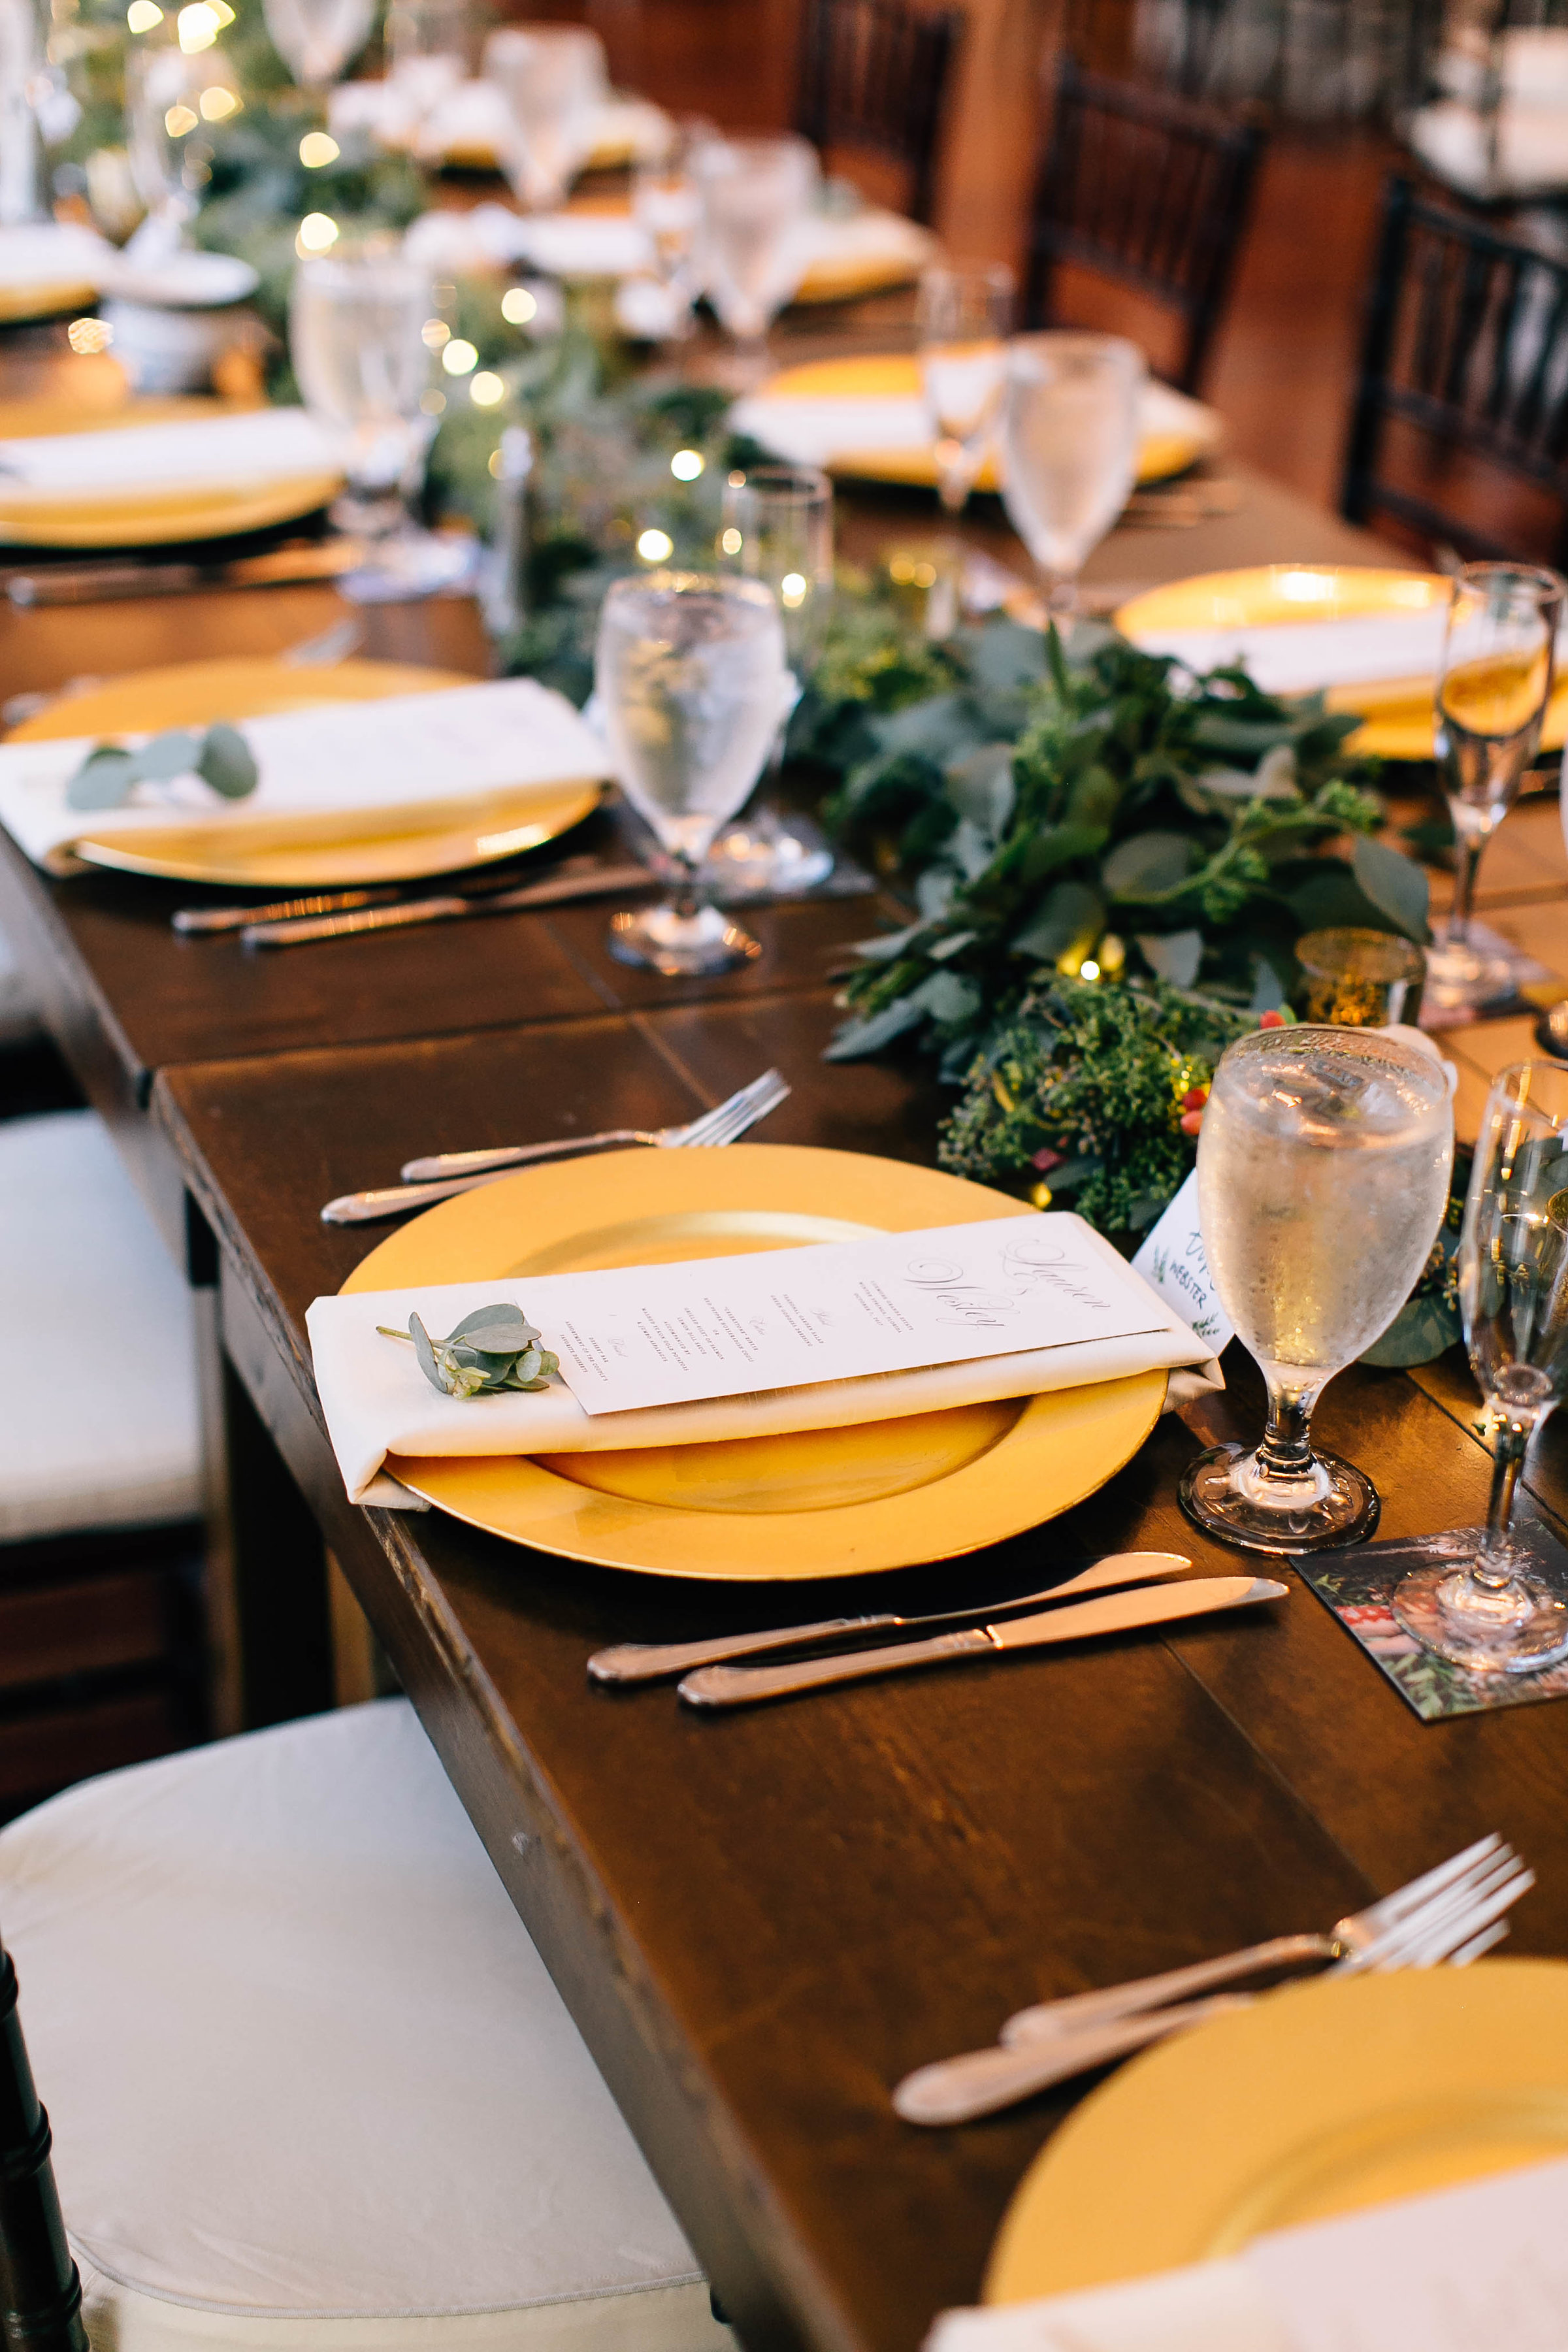 Orlando wedding planners tables with gold chargers, menus, & eucalyptus sprigs